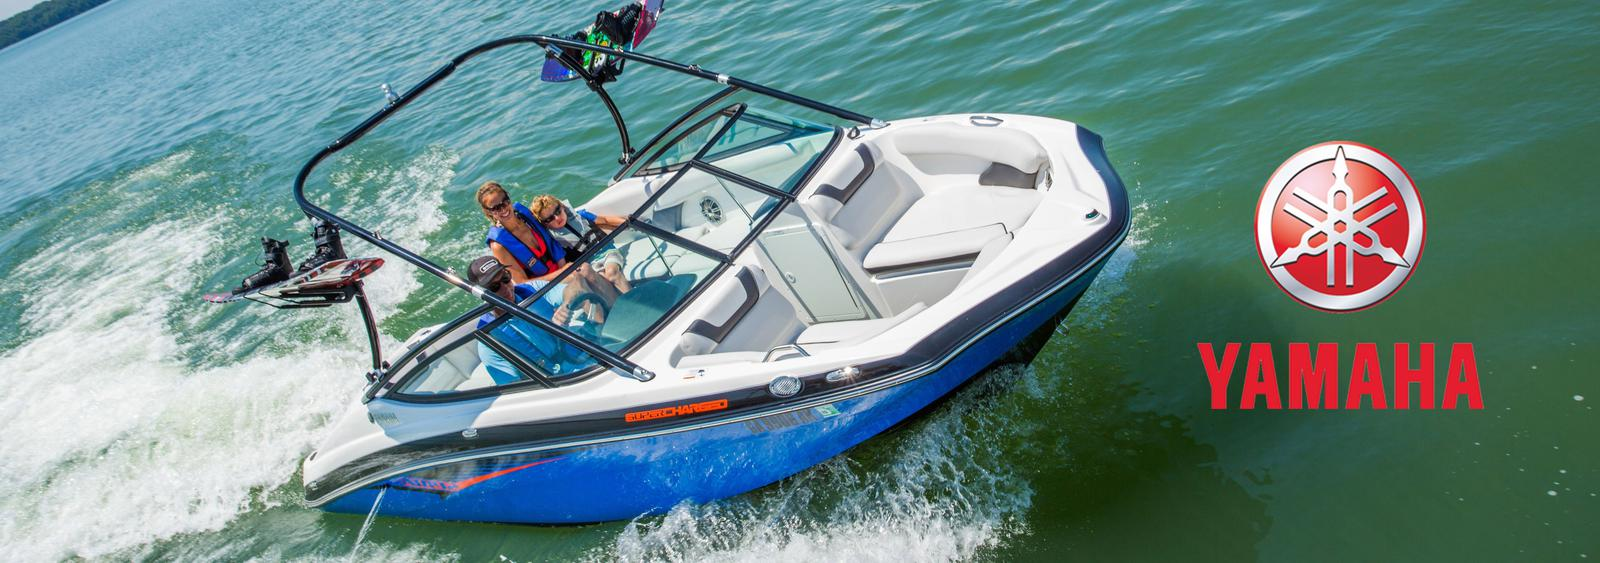 Yamaha Boat Motors And Apparel,Boat.Wiring Diagram Database